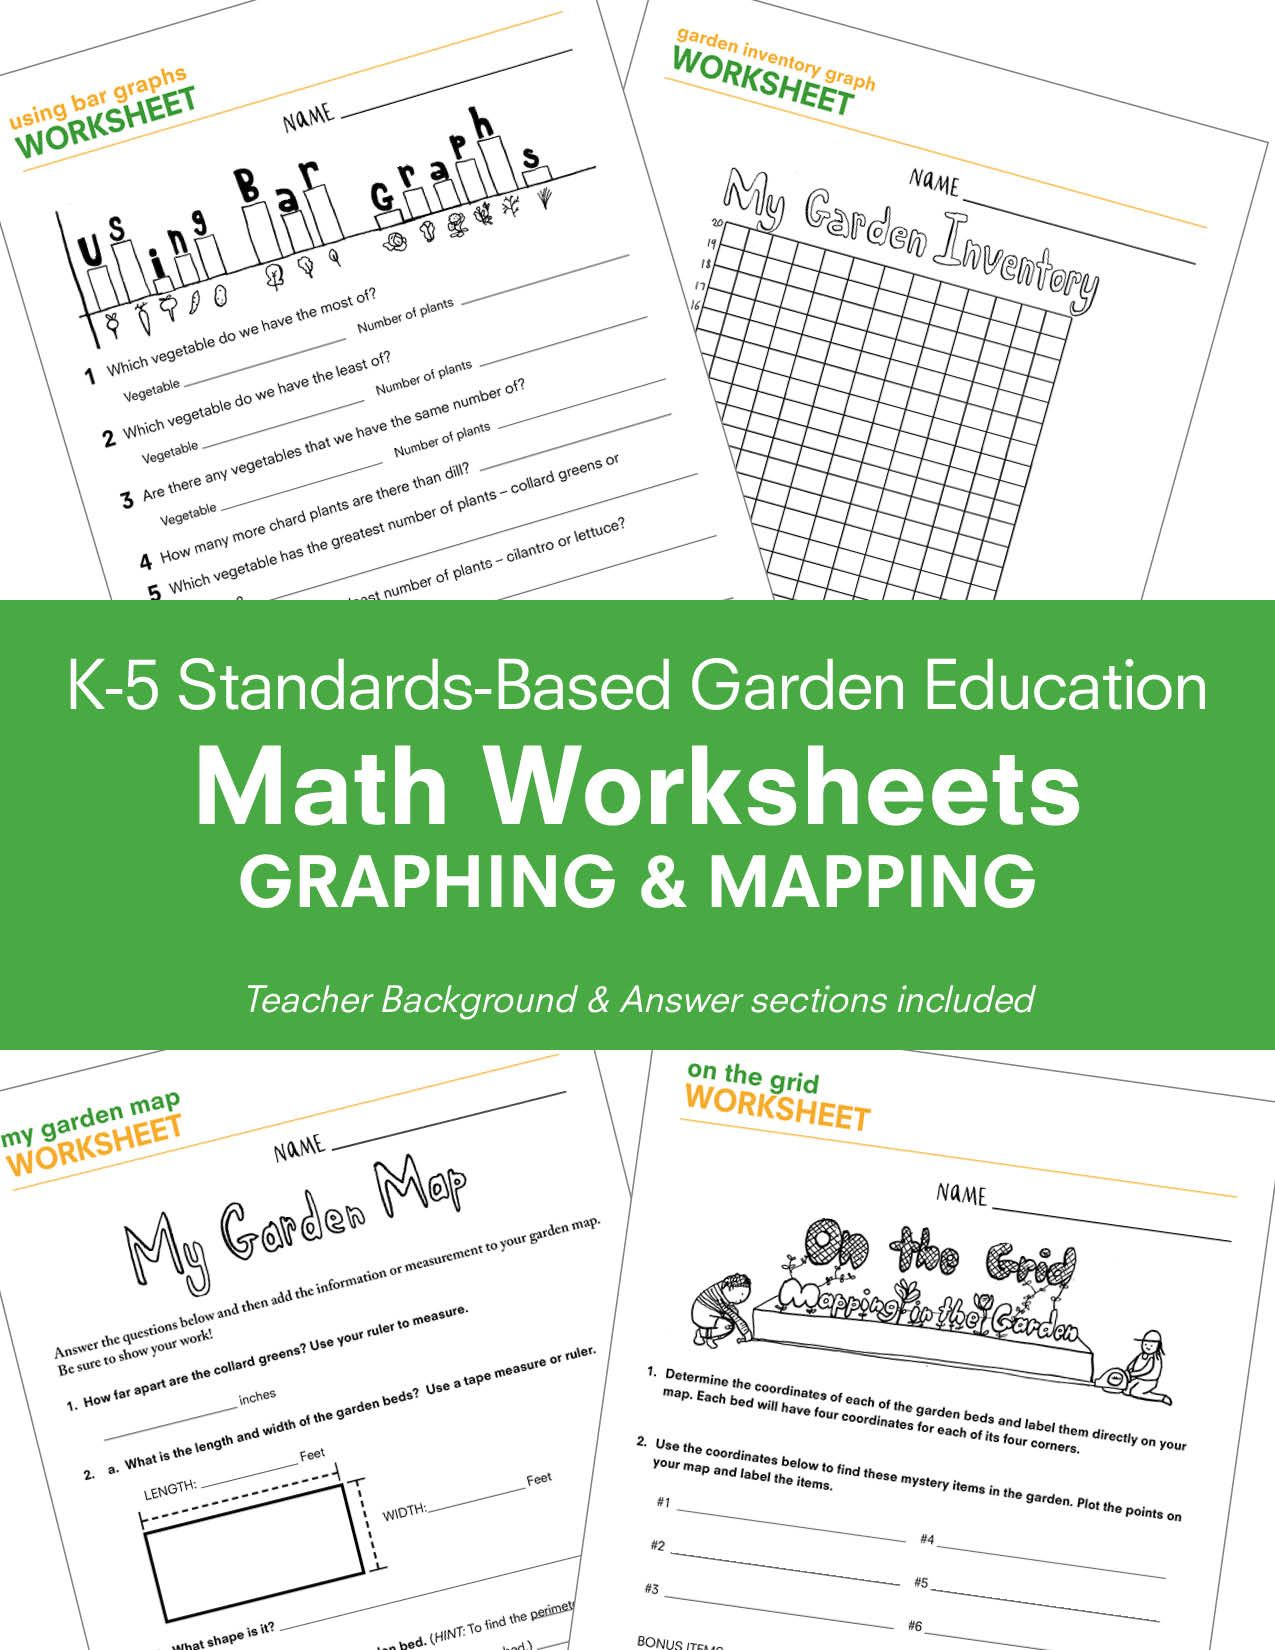 Teacher Resources Worksheets And Guides Covering Addition Subtraction Formulas Fractions Word Problems Equ Word Problems Teacher Resources Education Math